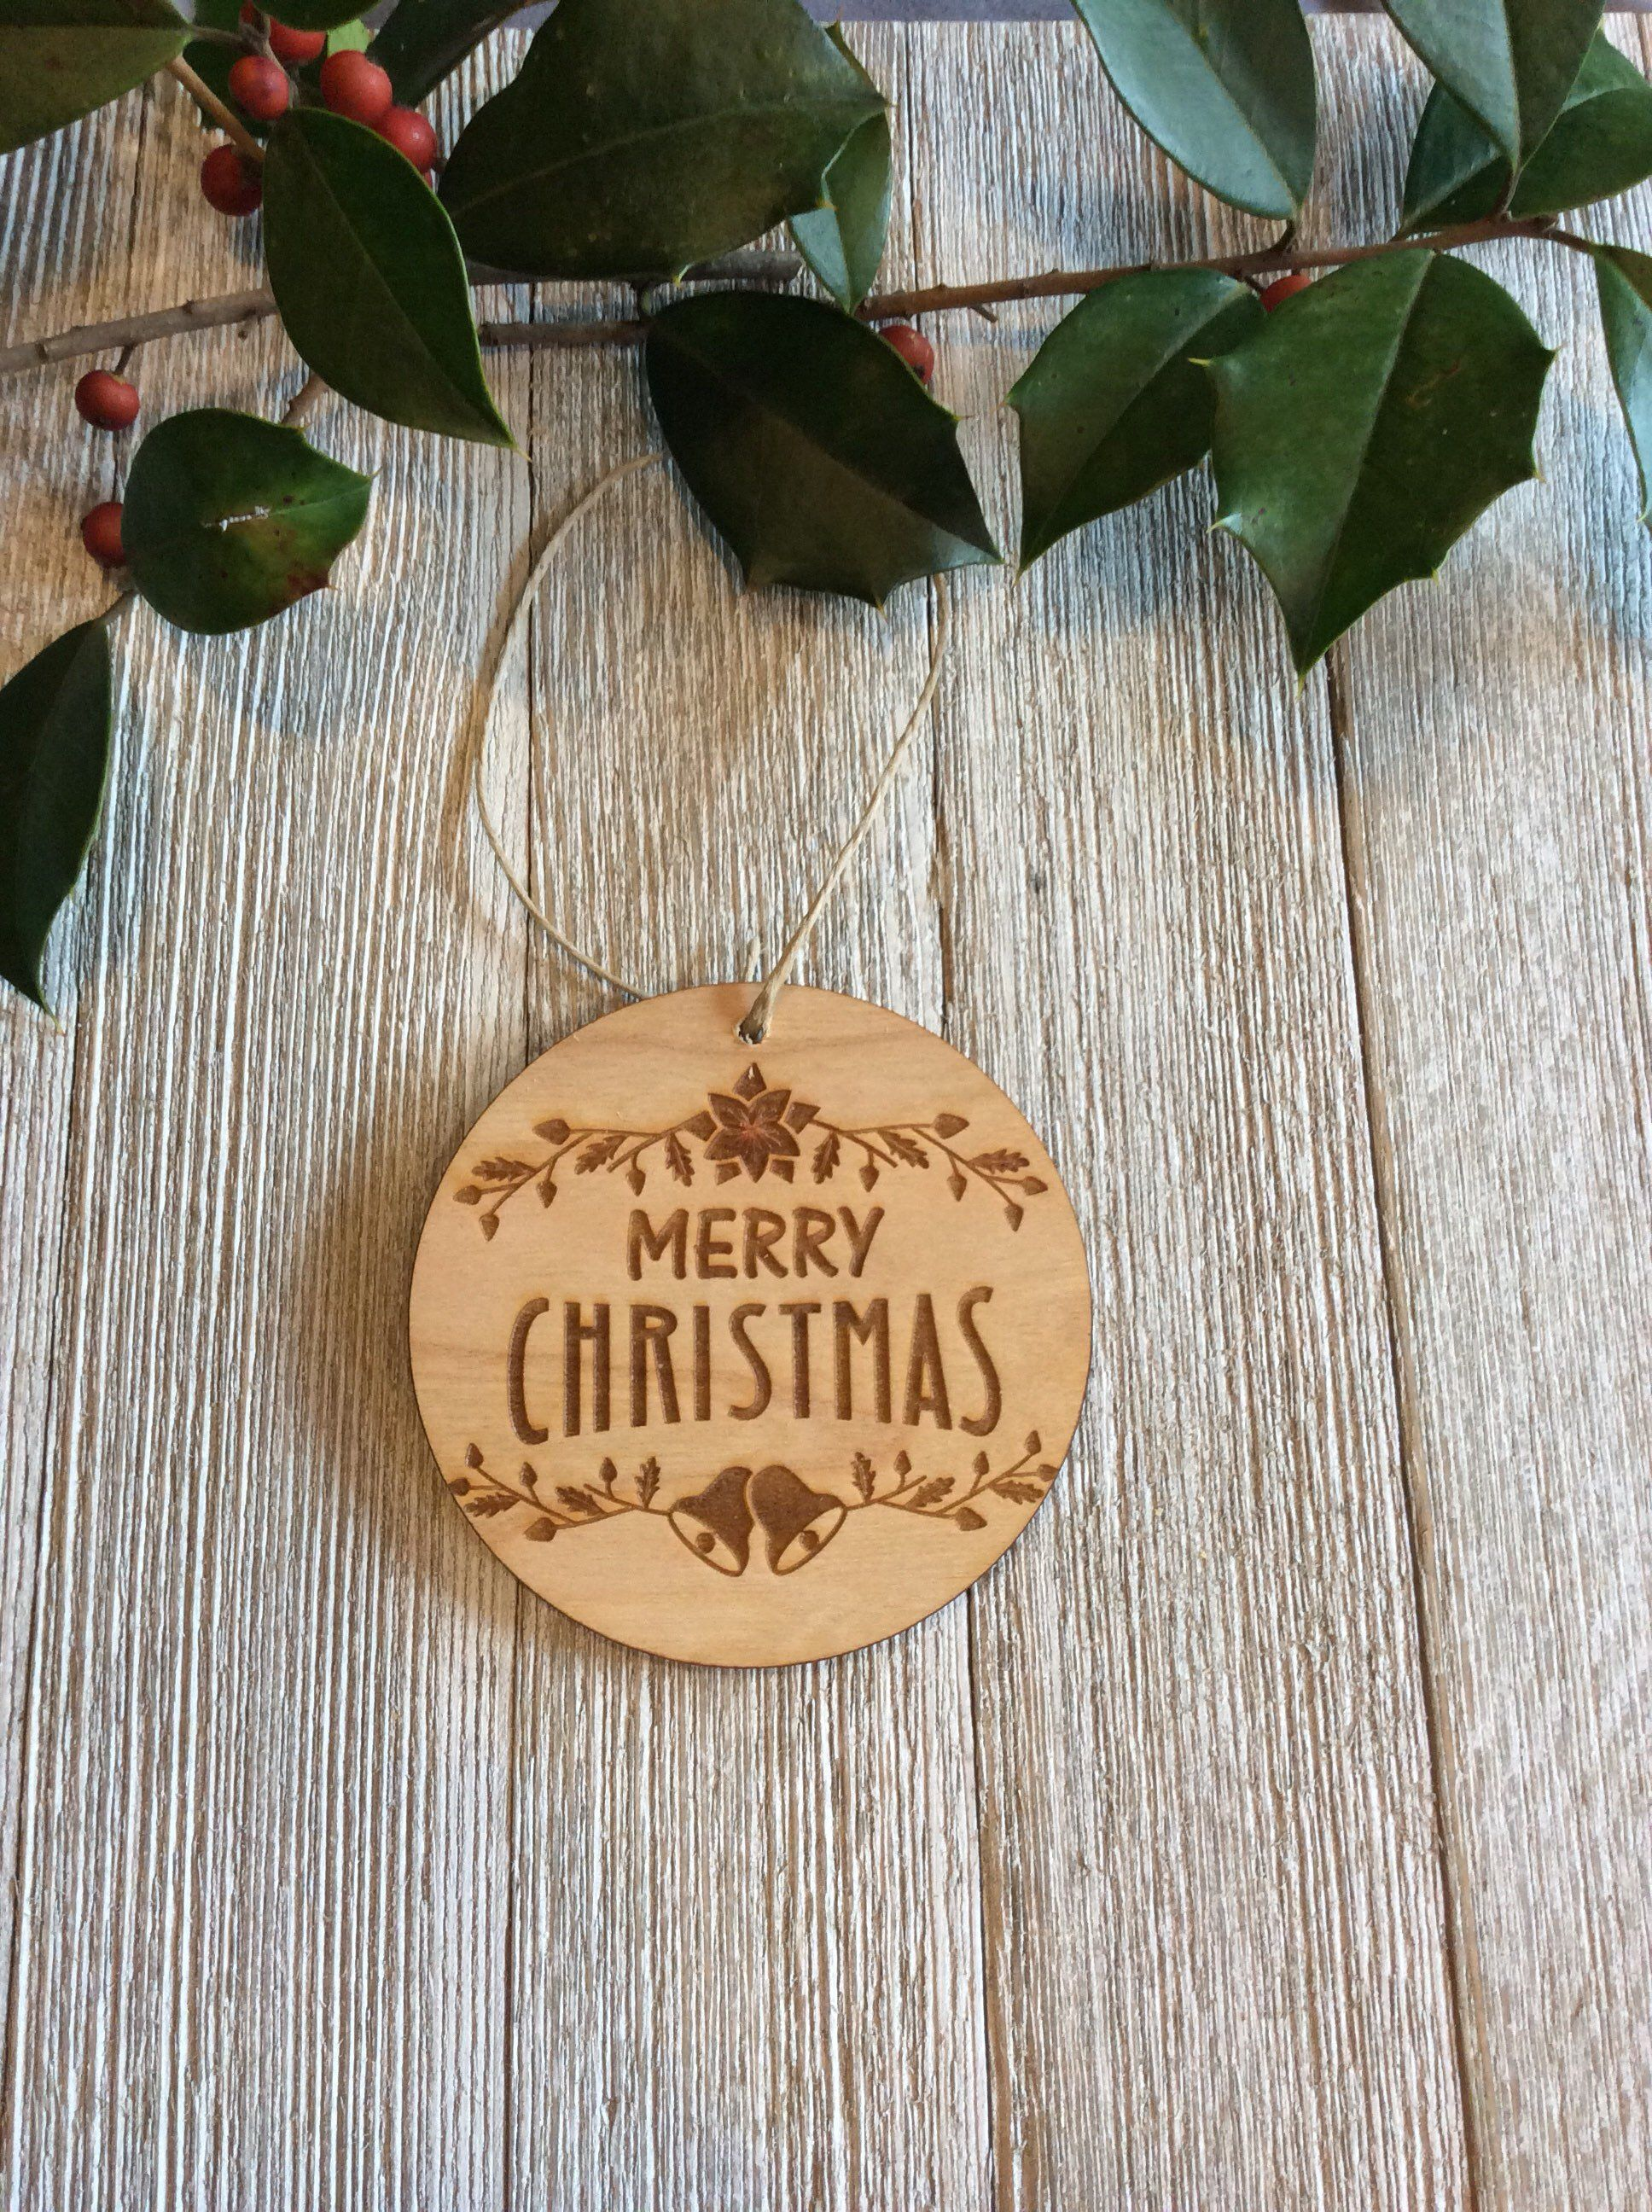 Wooden Ornaments Engraved Christmas Ornament Wood Gift Tags Wood Christmas Ornaments Wooden Christmas Ornaments Wooden Ornaments